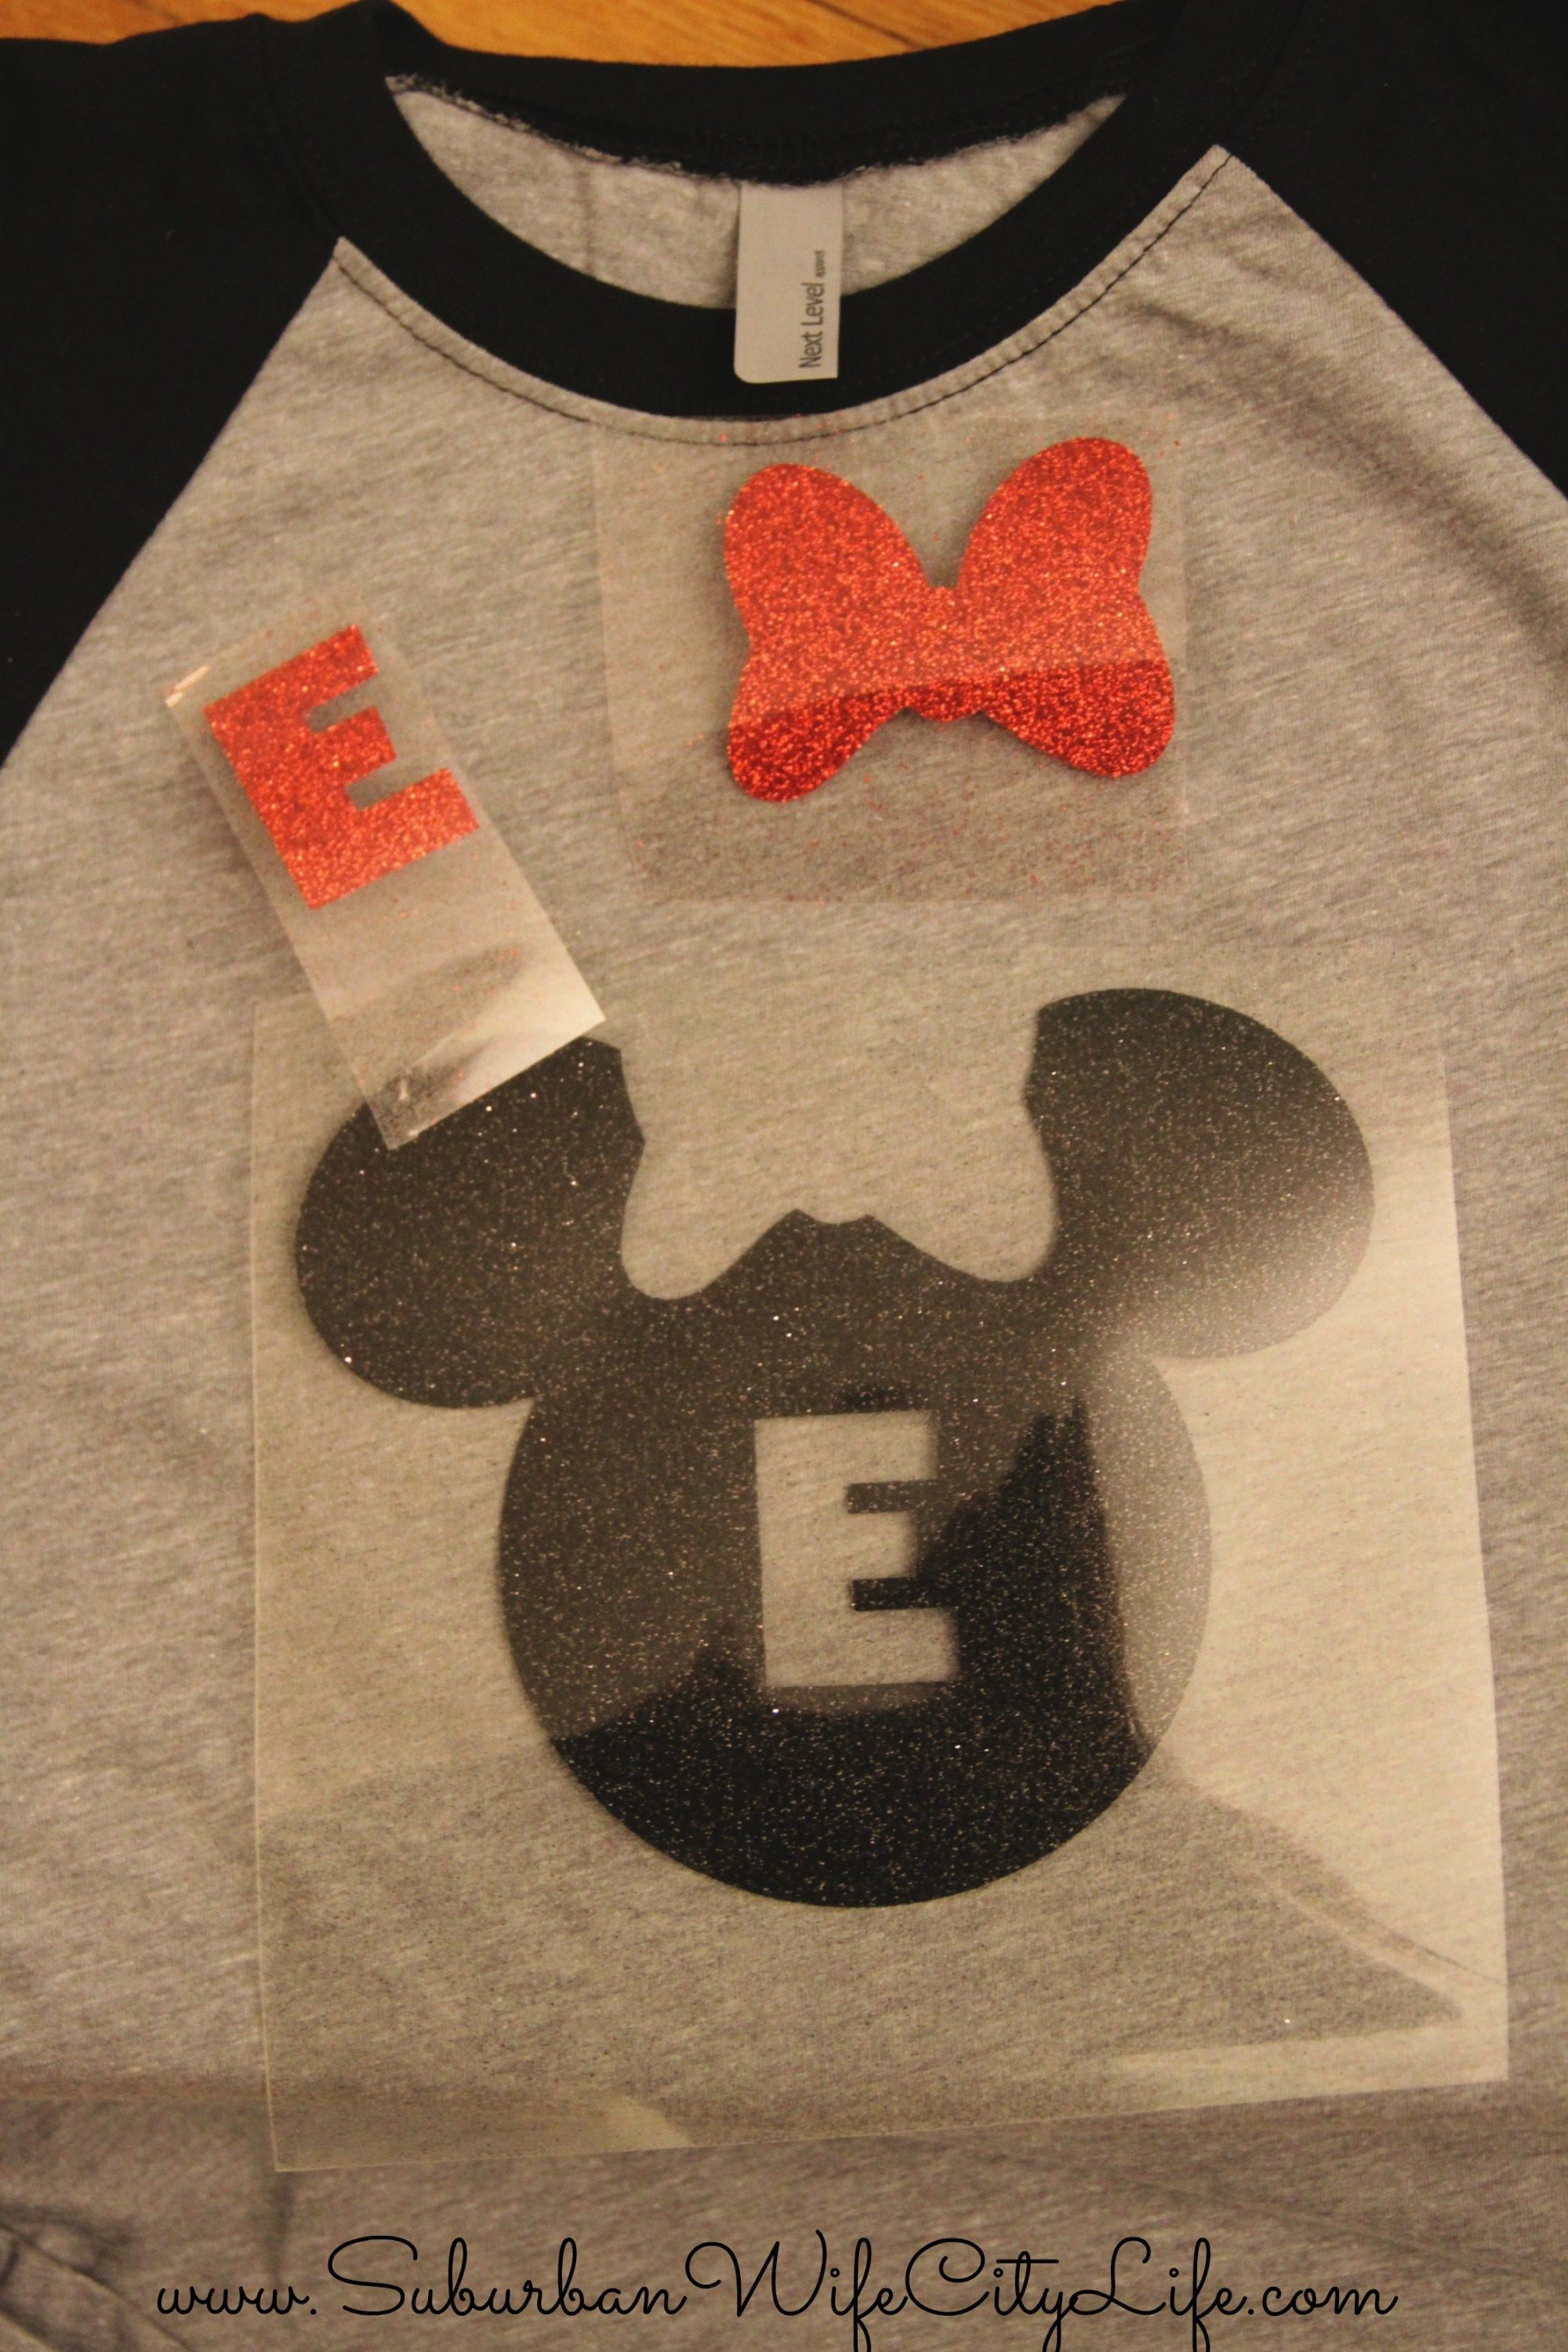 Diy Family Disney Shirts With Cricut I Love My New Cricut